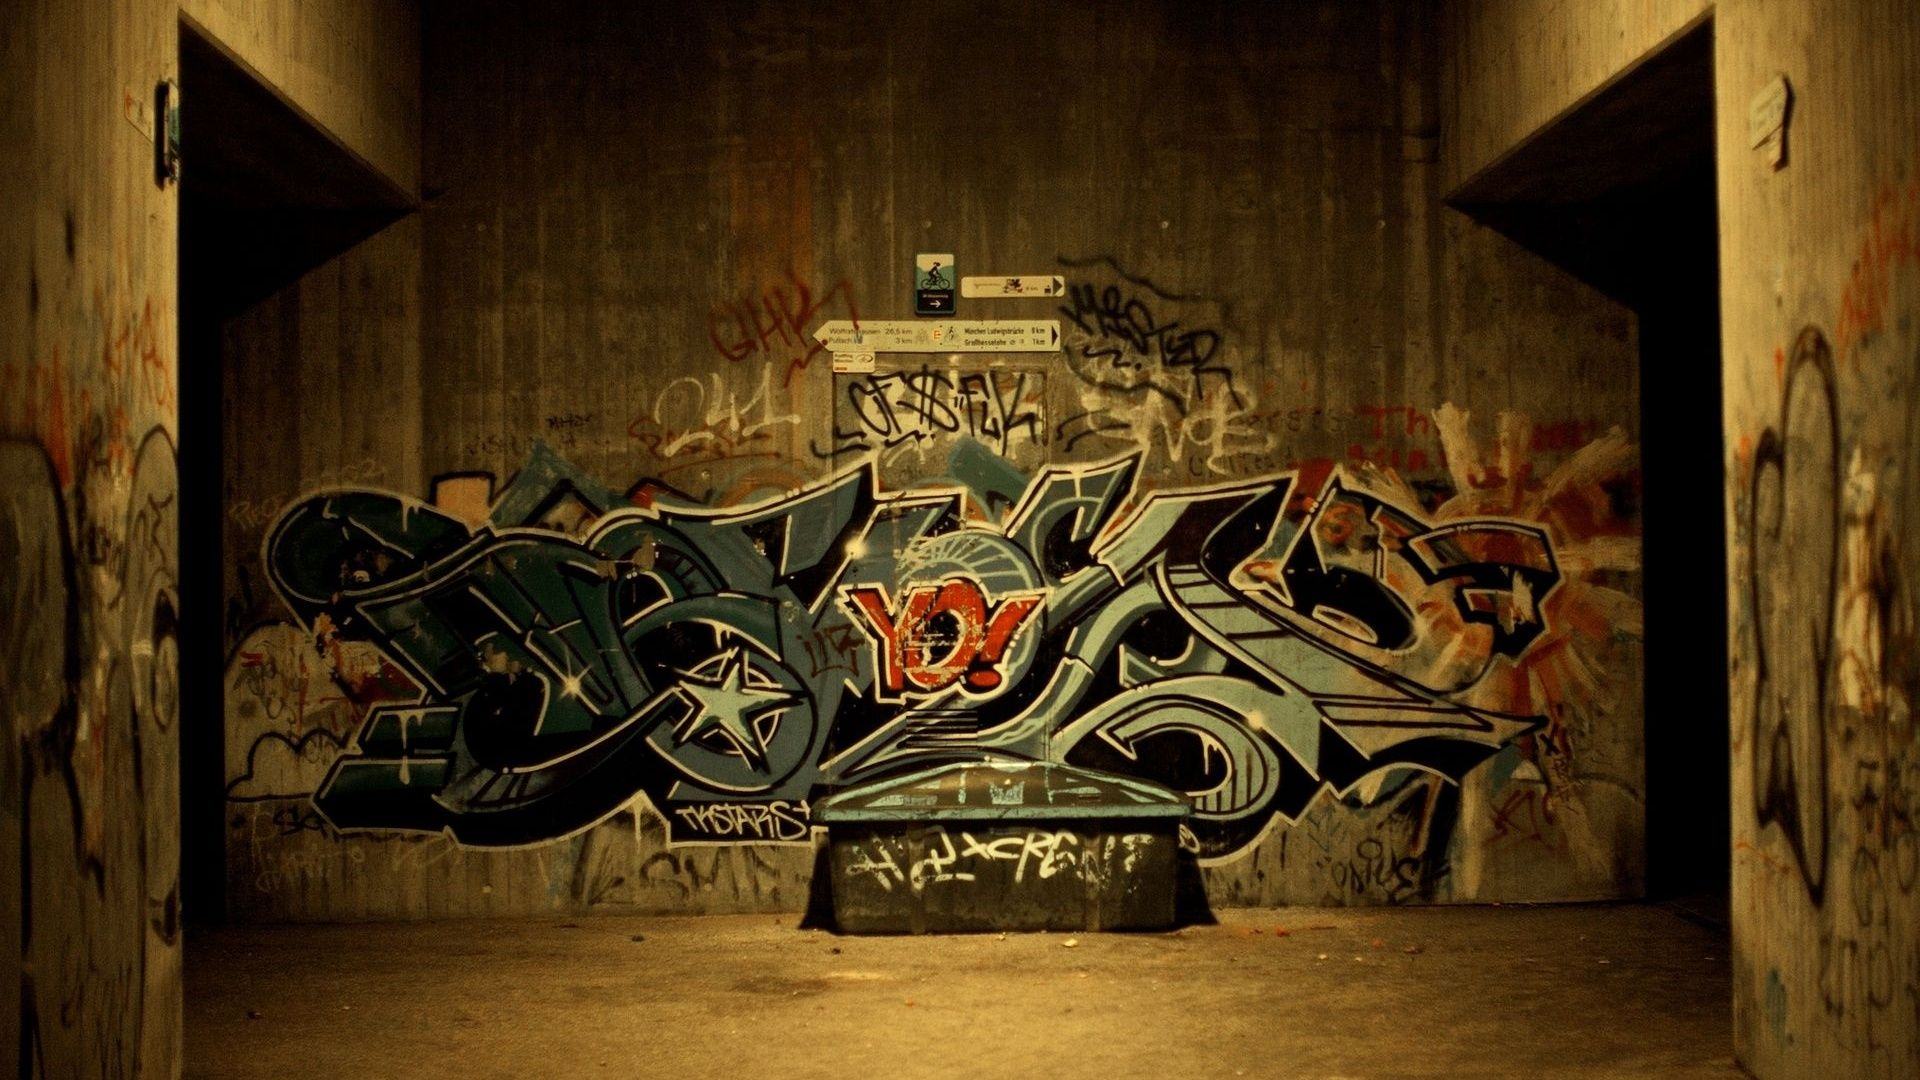 1920x1080 rap, hip hop, graffiti, street art, graffiti hip